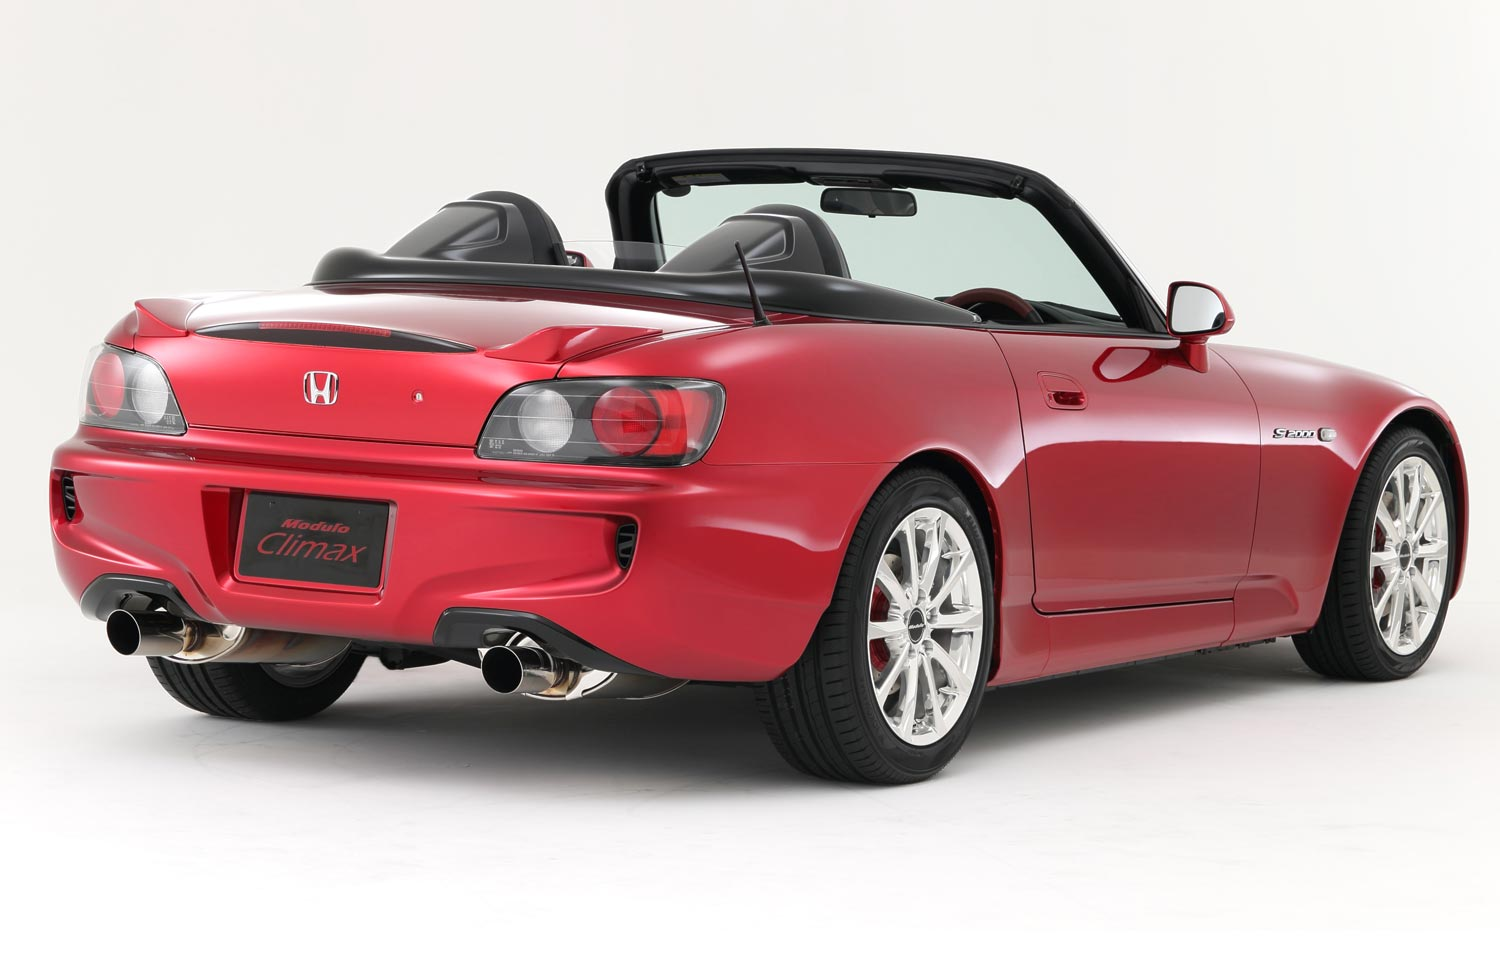 honda teases new body kit for old s2000 roadster. Black Bedroom Furniture Sets. Home Design Ideas